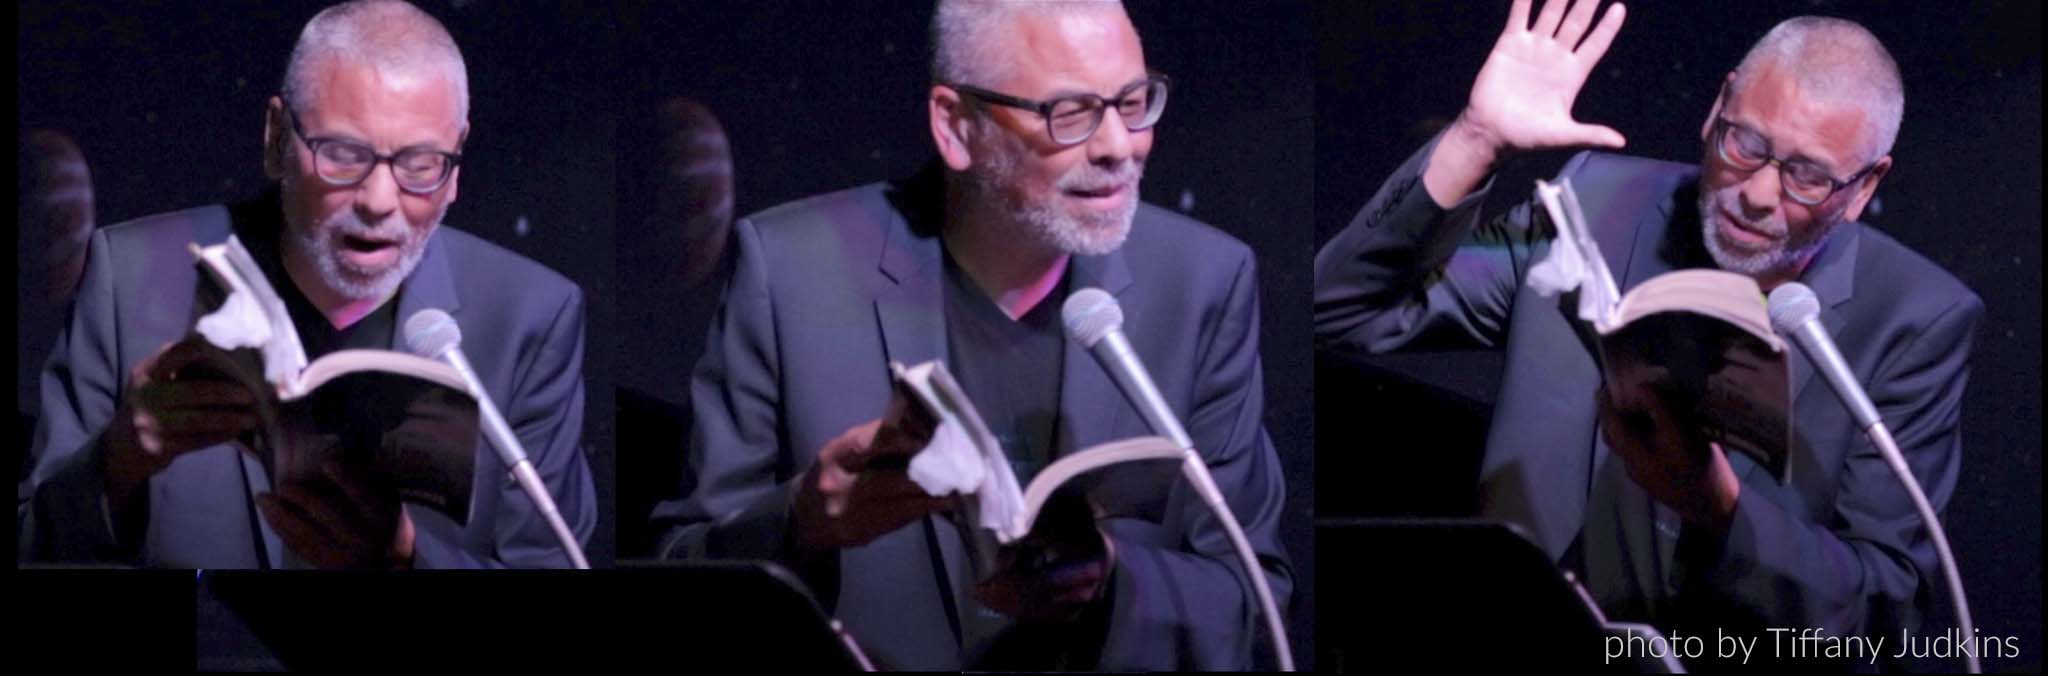 Peter reading The Johnson Chronicles by Peter J. Harris